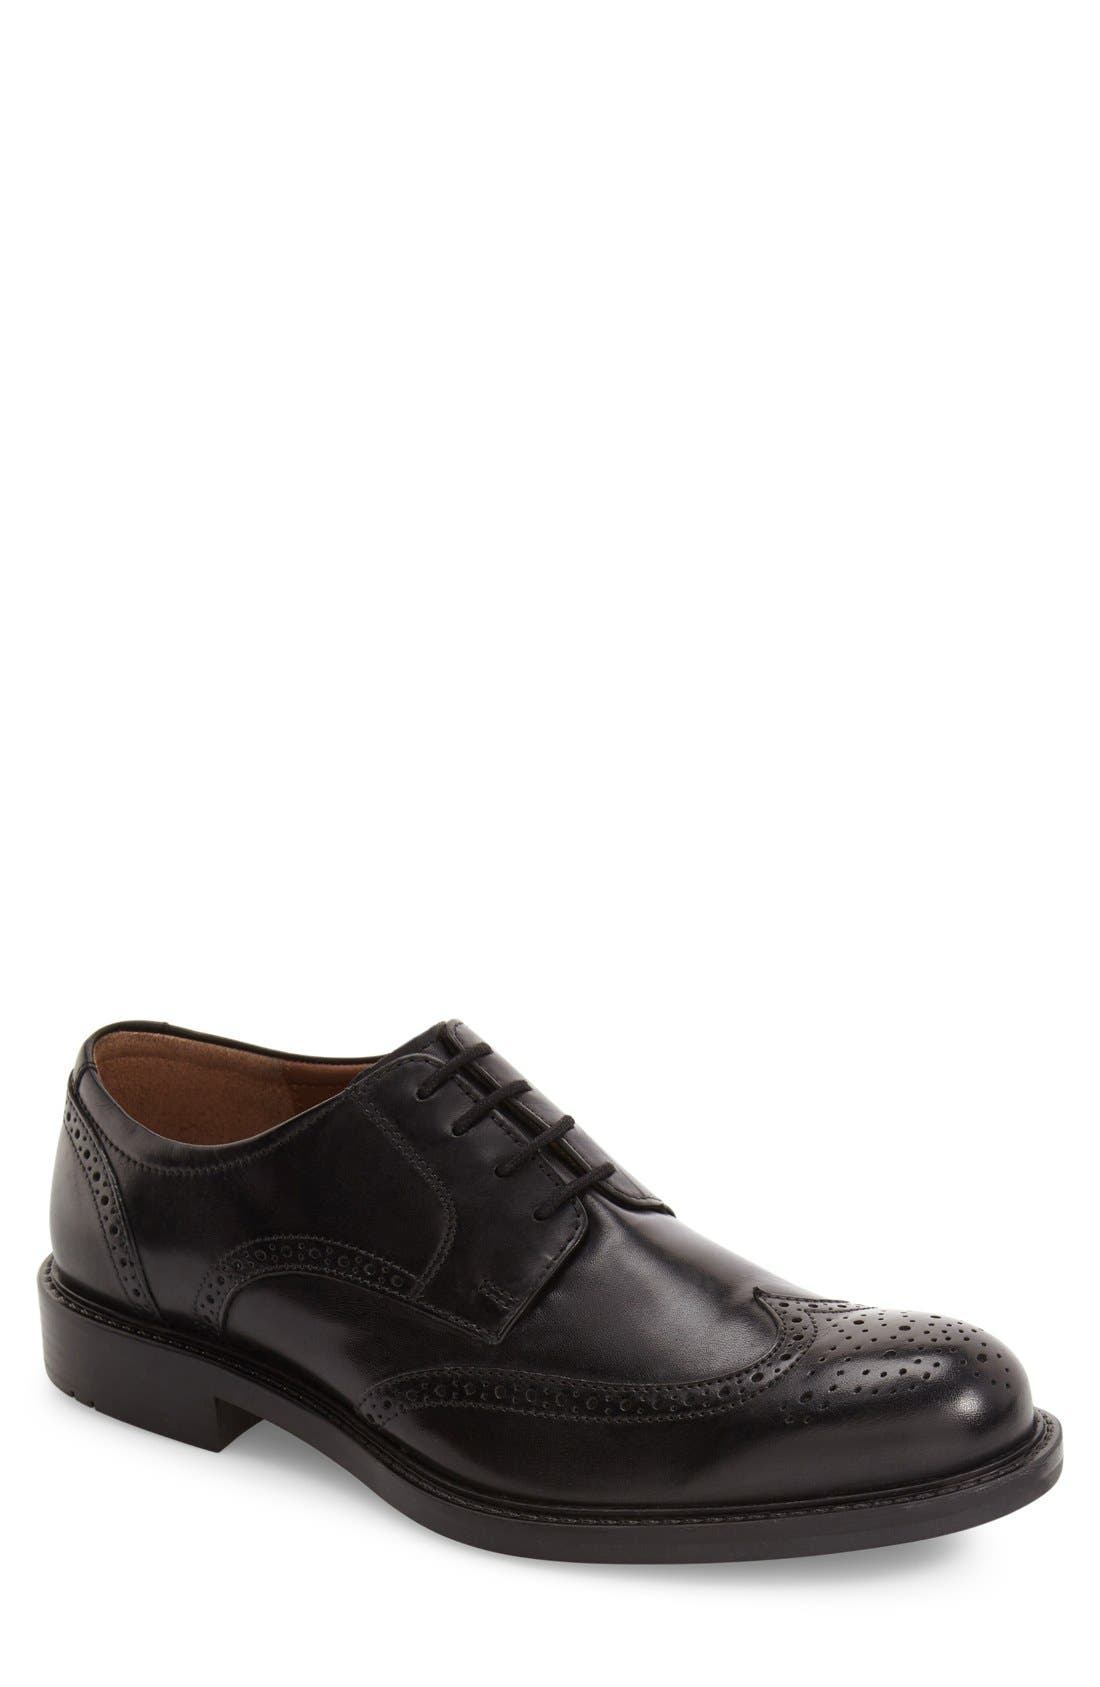 Tabor Wingtip,                             Alternate thumbnail 5, color,                             BLACK LEATHER